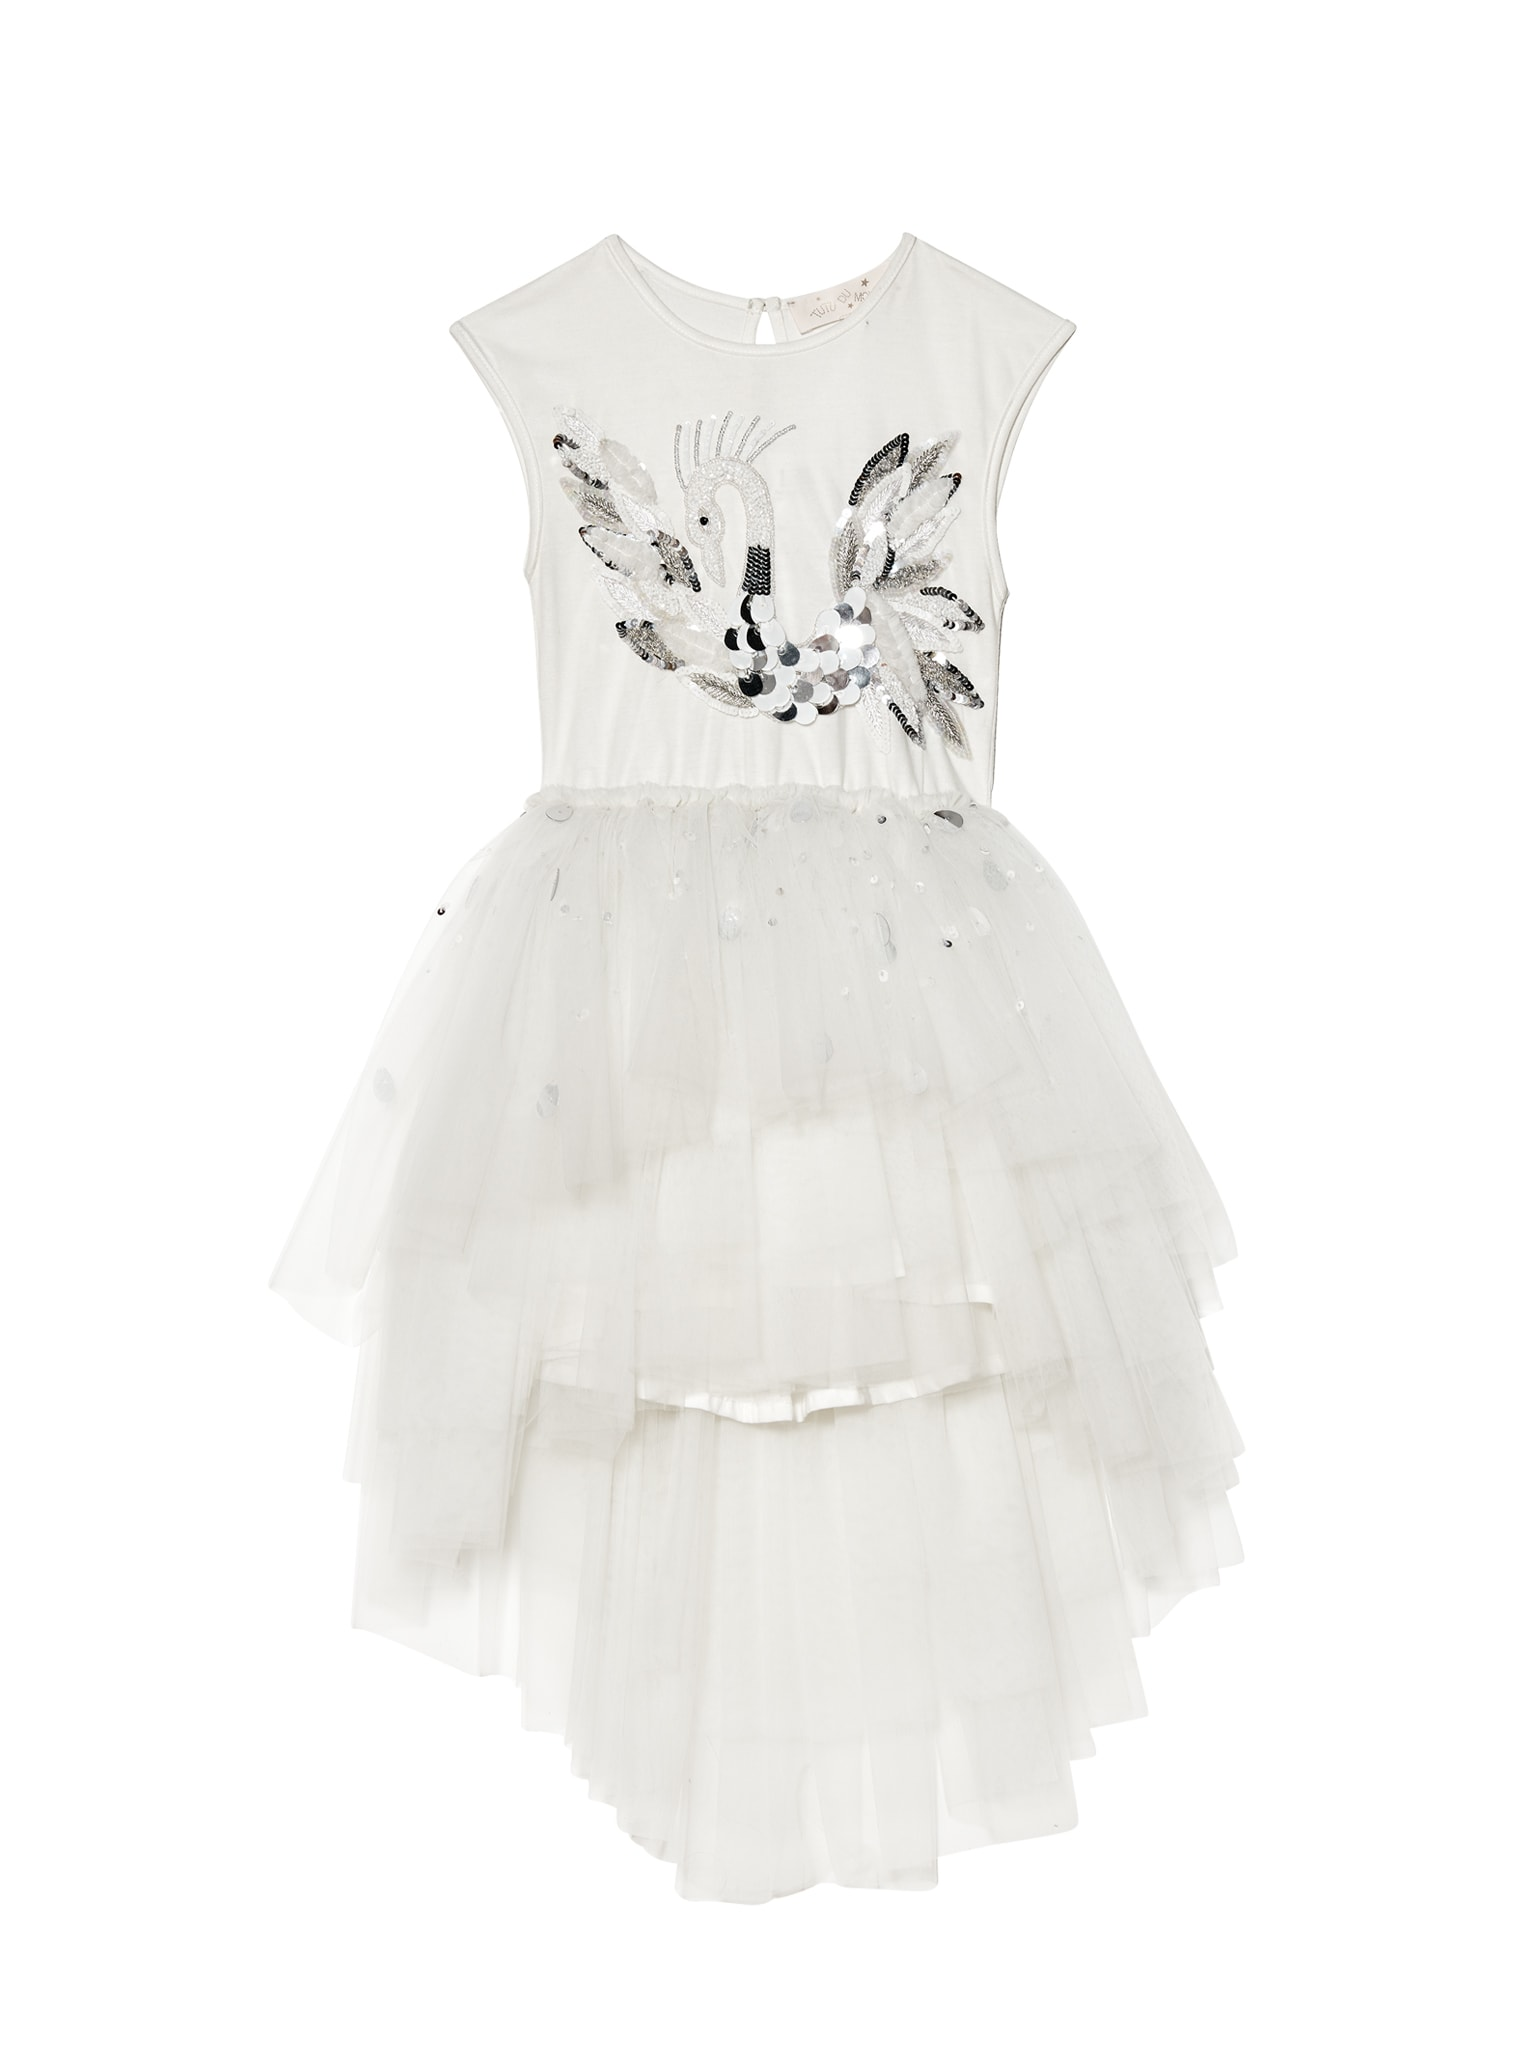 Tdm4339 cherished swan tutu dress 01 min